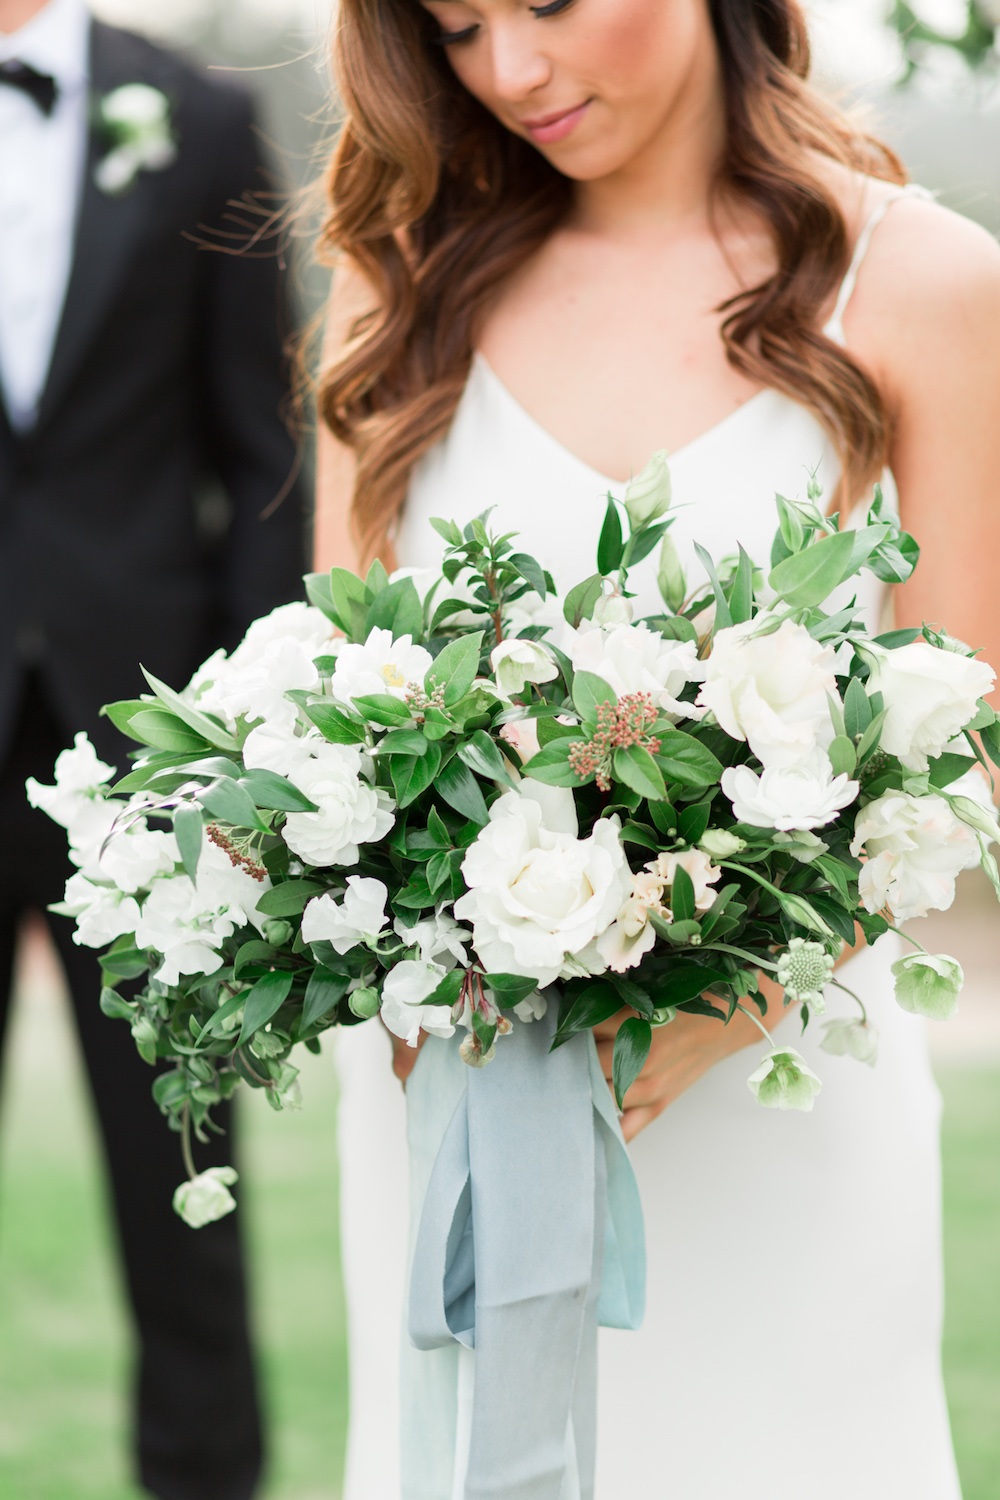 Elegant white bridal bouquet | Rancho Valencia Weddings | Rancho Santa Fe | Compass Floral | Wedding Florist in San Diego and Southern California | Cavin Elizabeth Photography